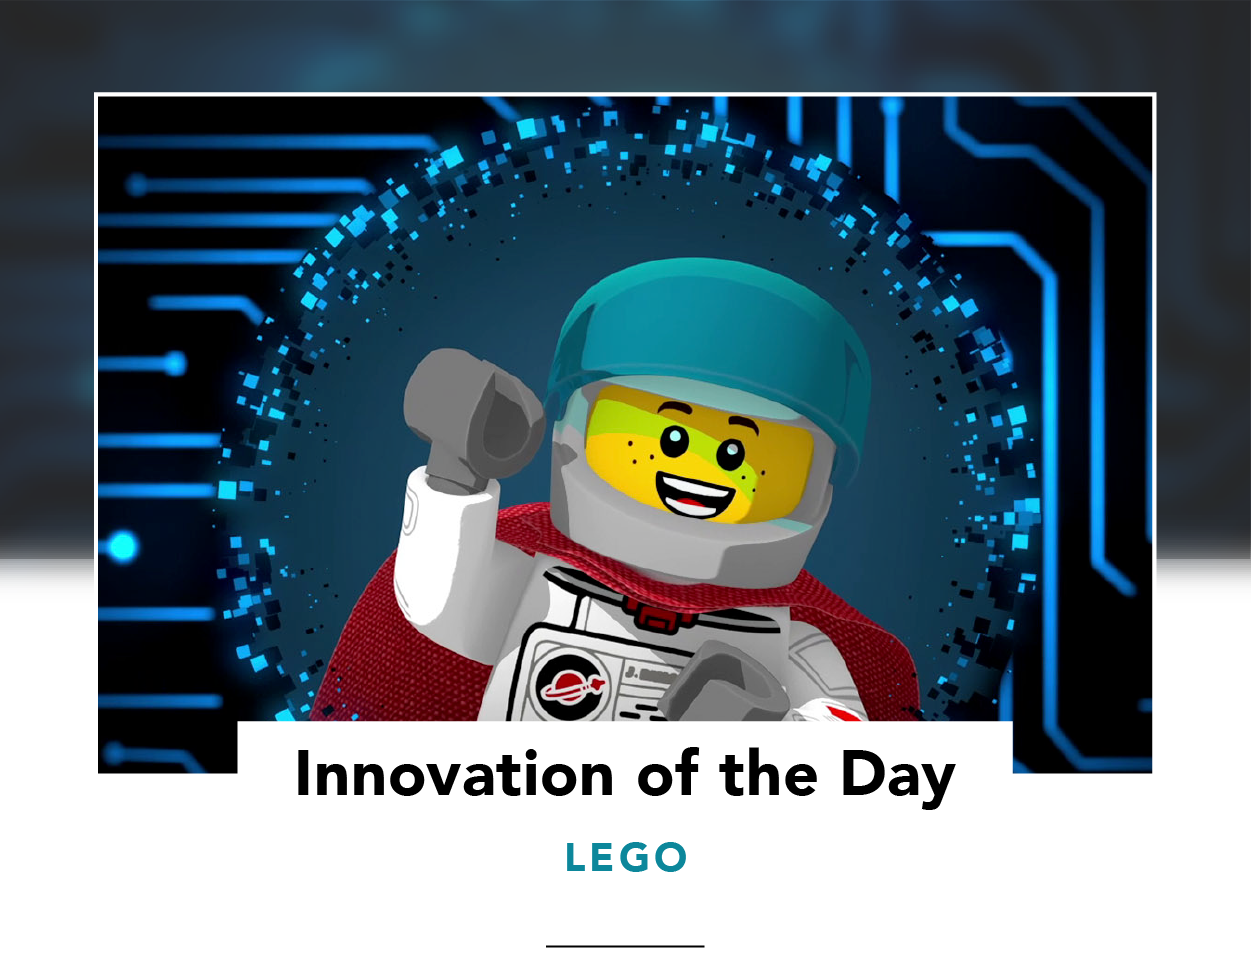 Captain Safety, a LEGO character who teaches kids to be online heroes